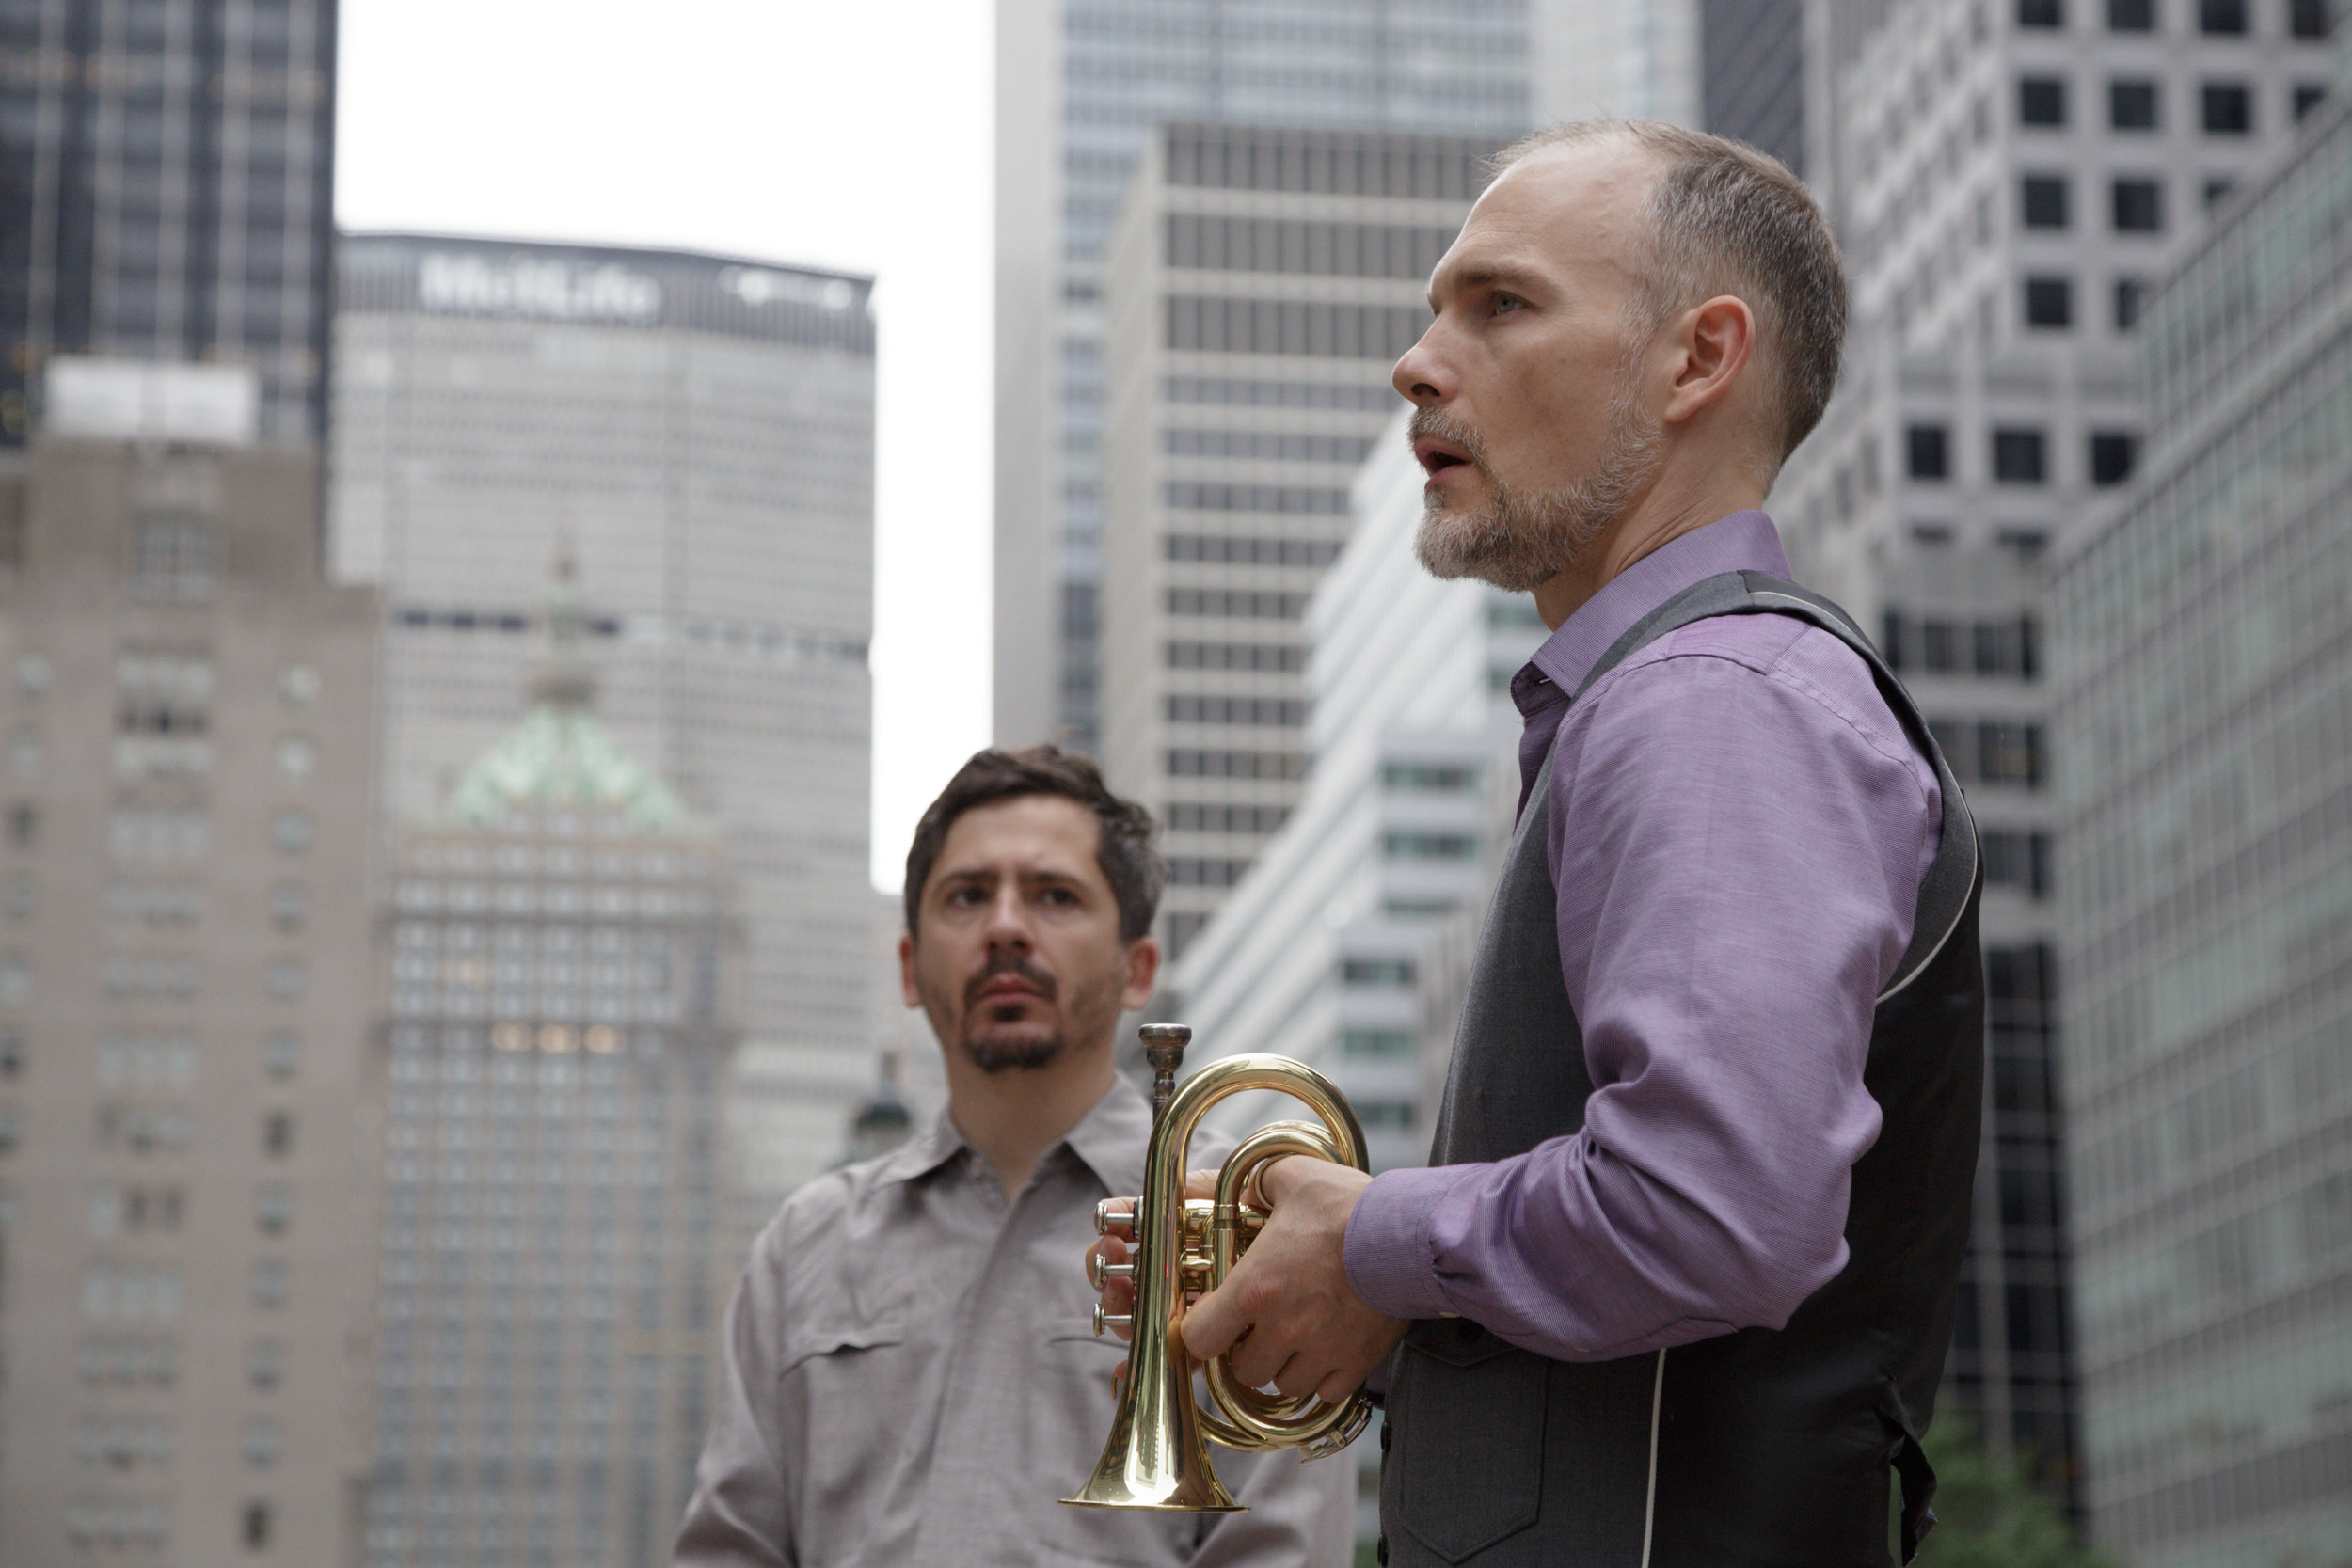 Craig Shepard (R) with Eric Biondo rehearsing on Park Avenue in New York. Photo by Beth O'Brien.